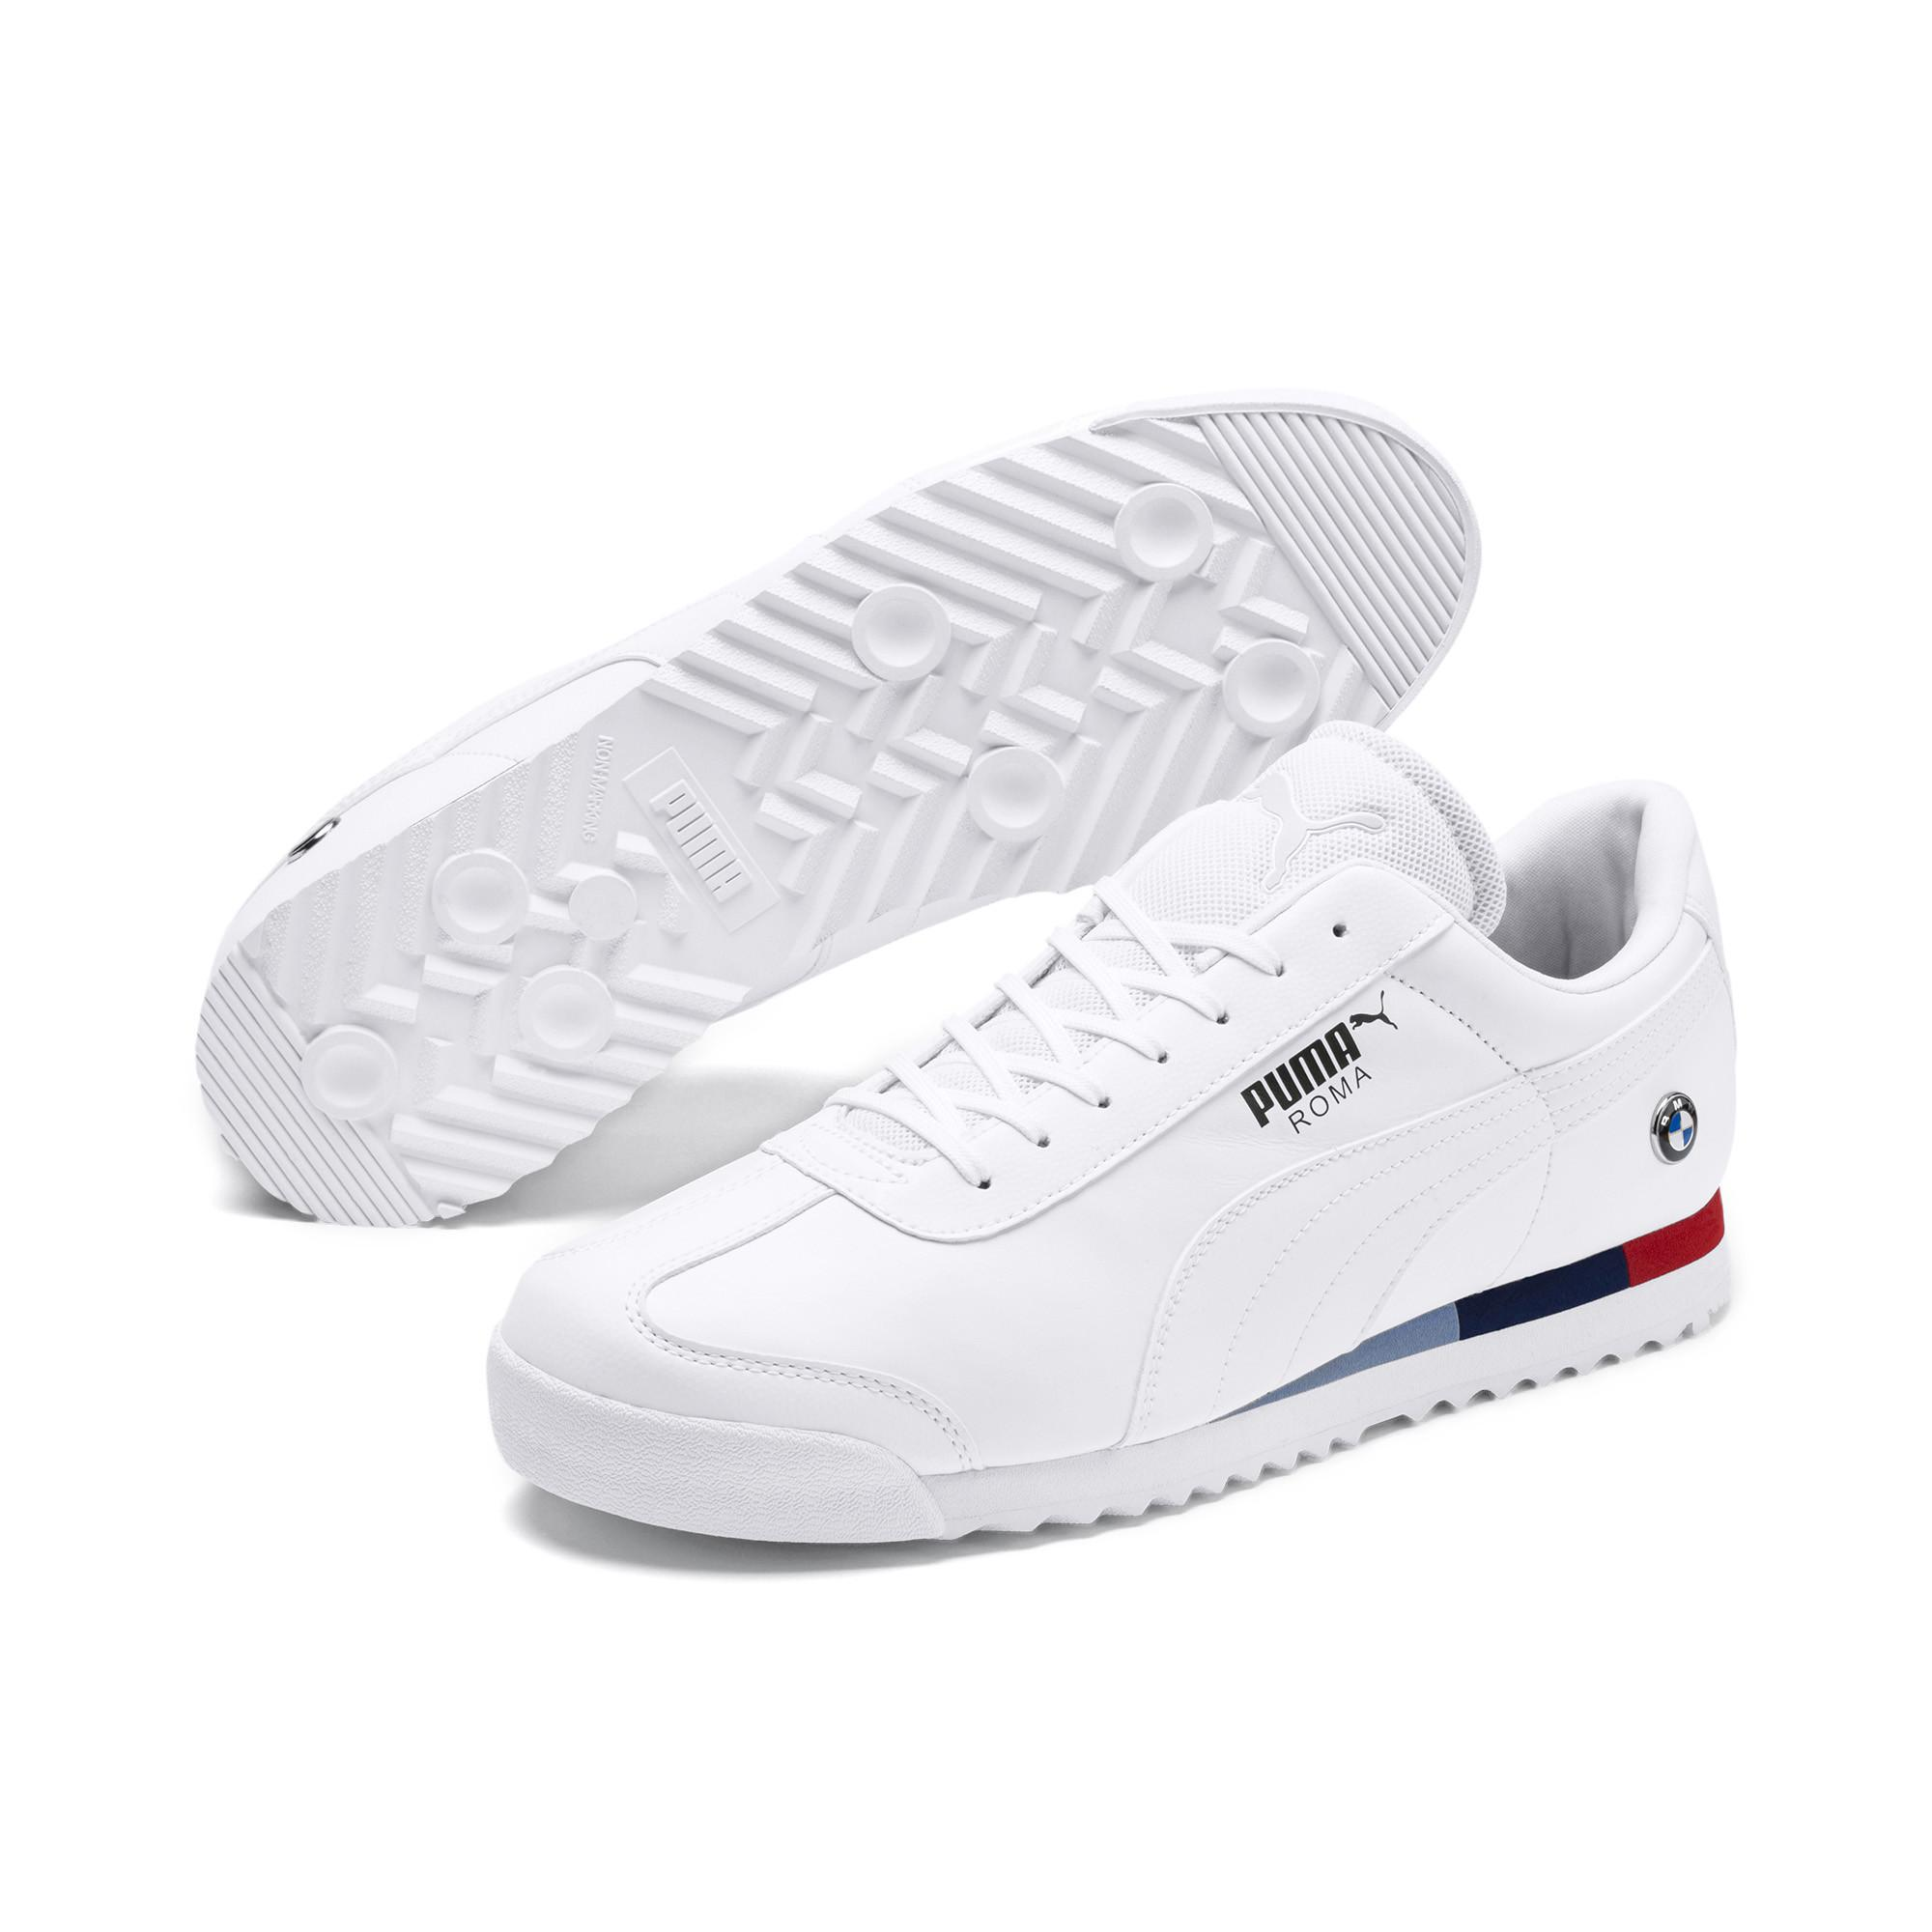 4928ac703b1 Lyst puma roma mens sneakers in white for men jpg 2000x2000 Mms shoes